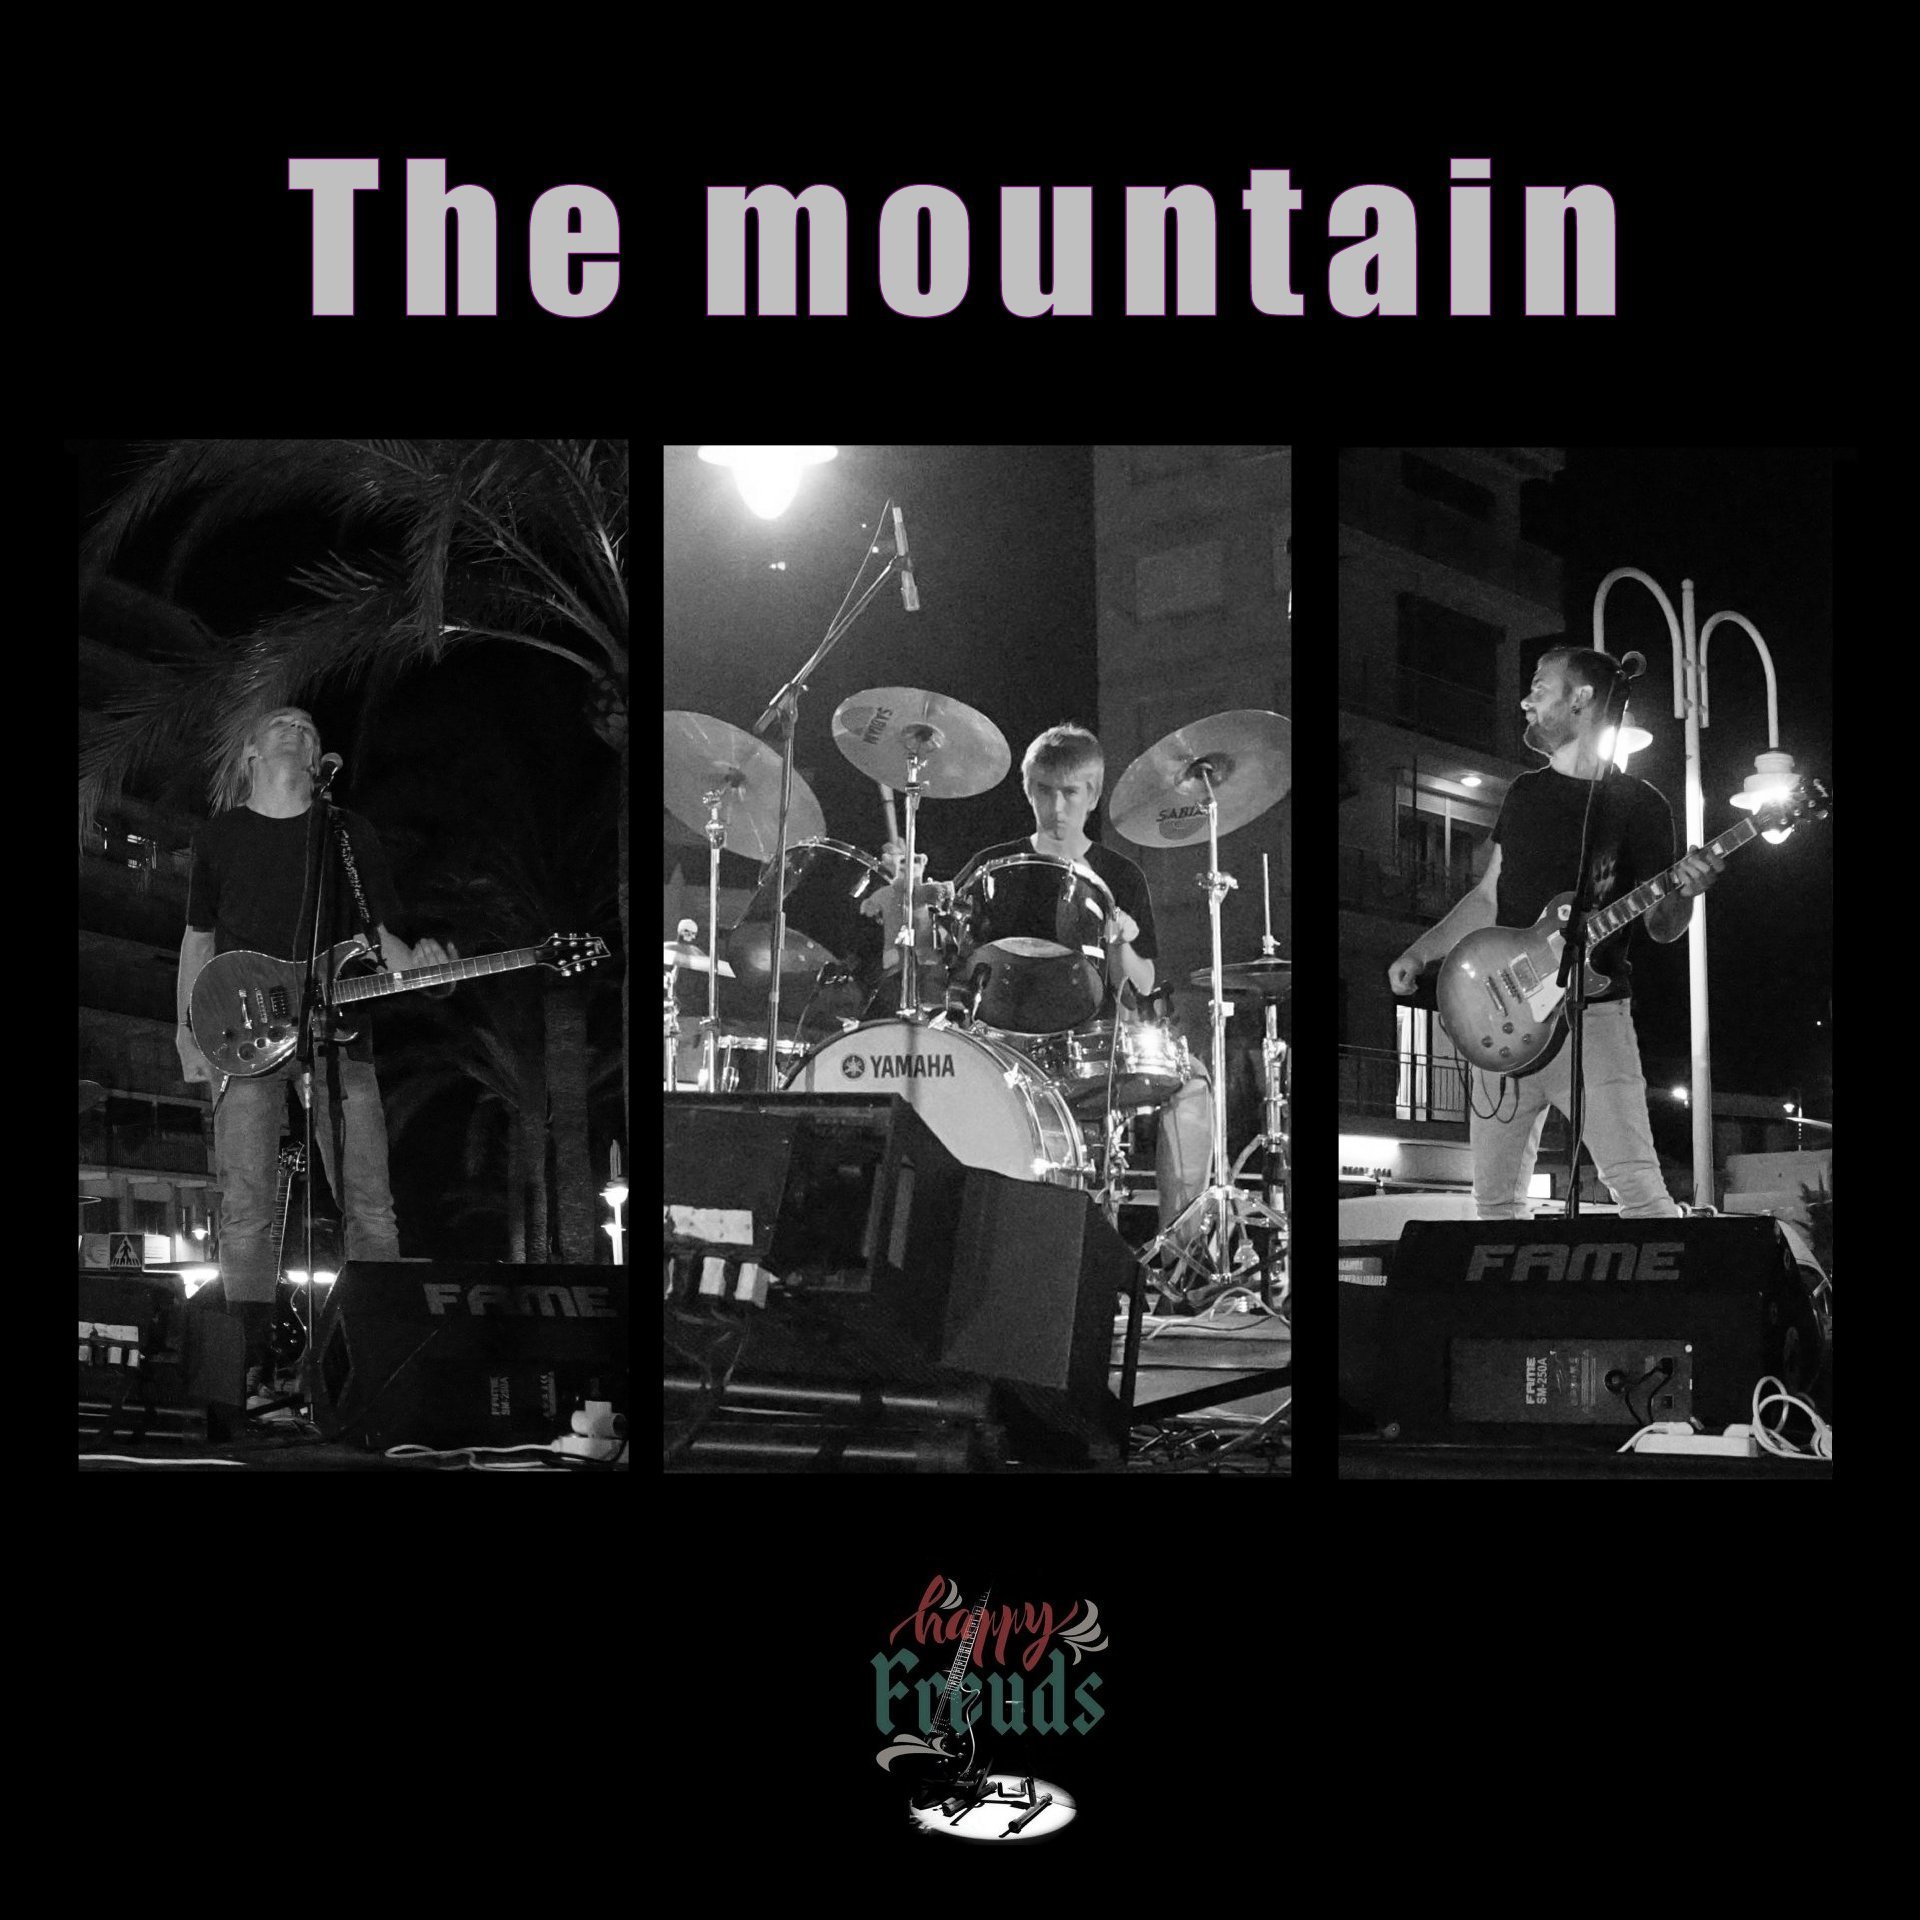 The Mountain - upcoming release.